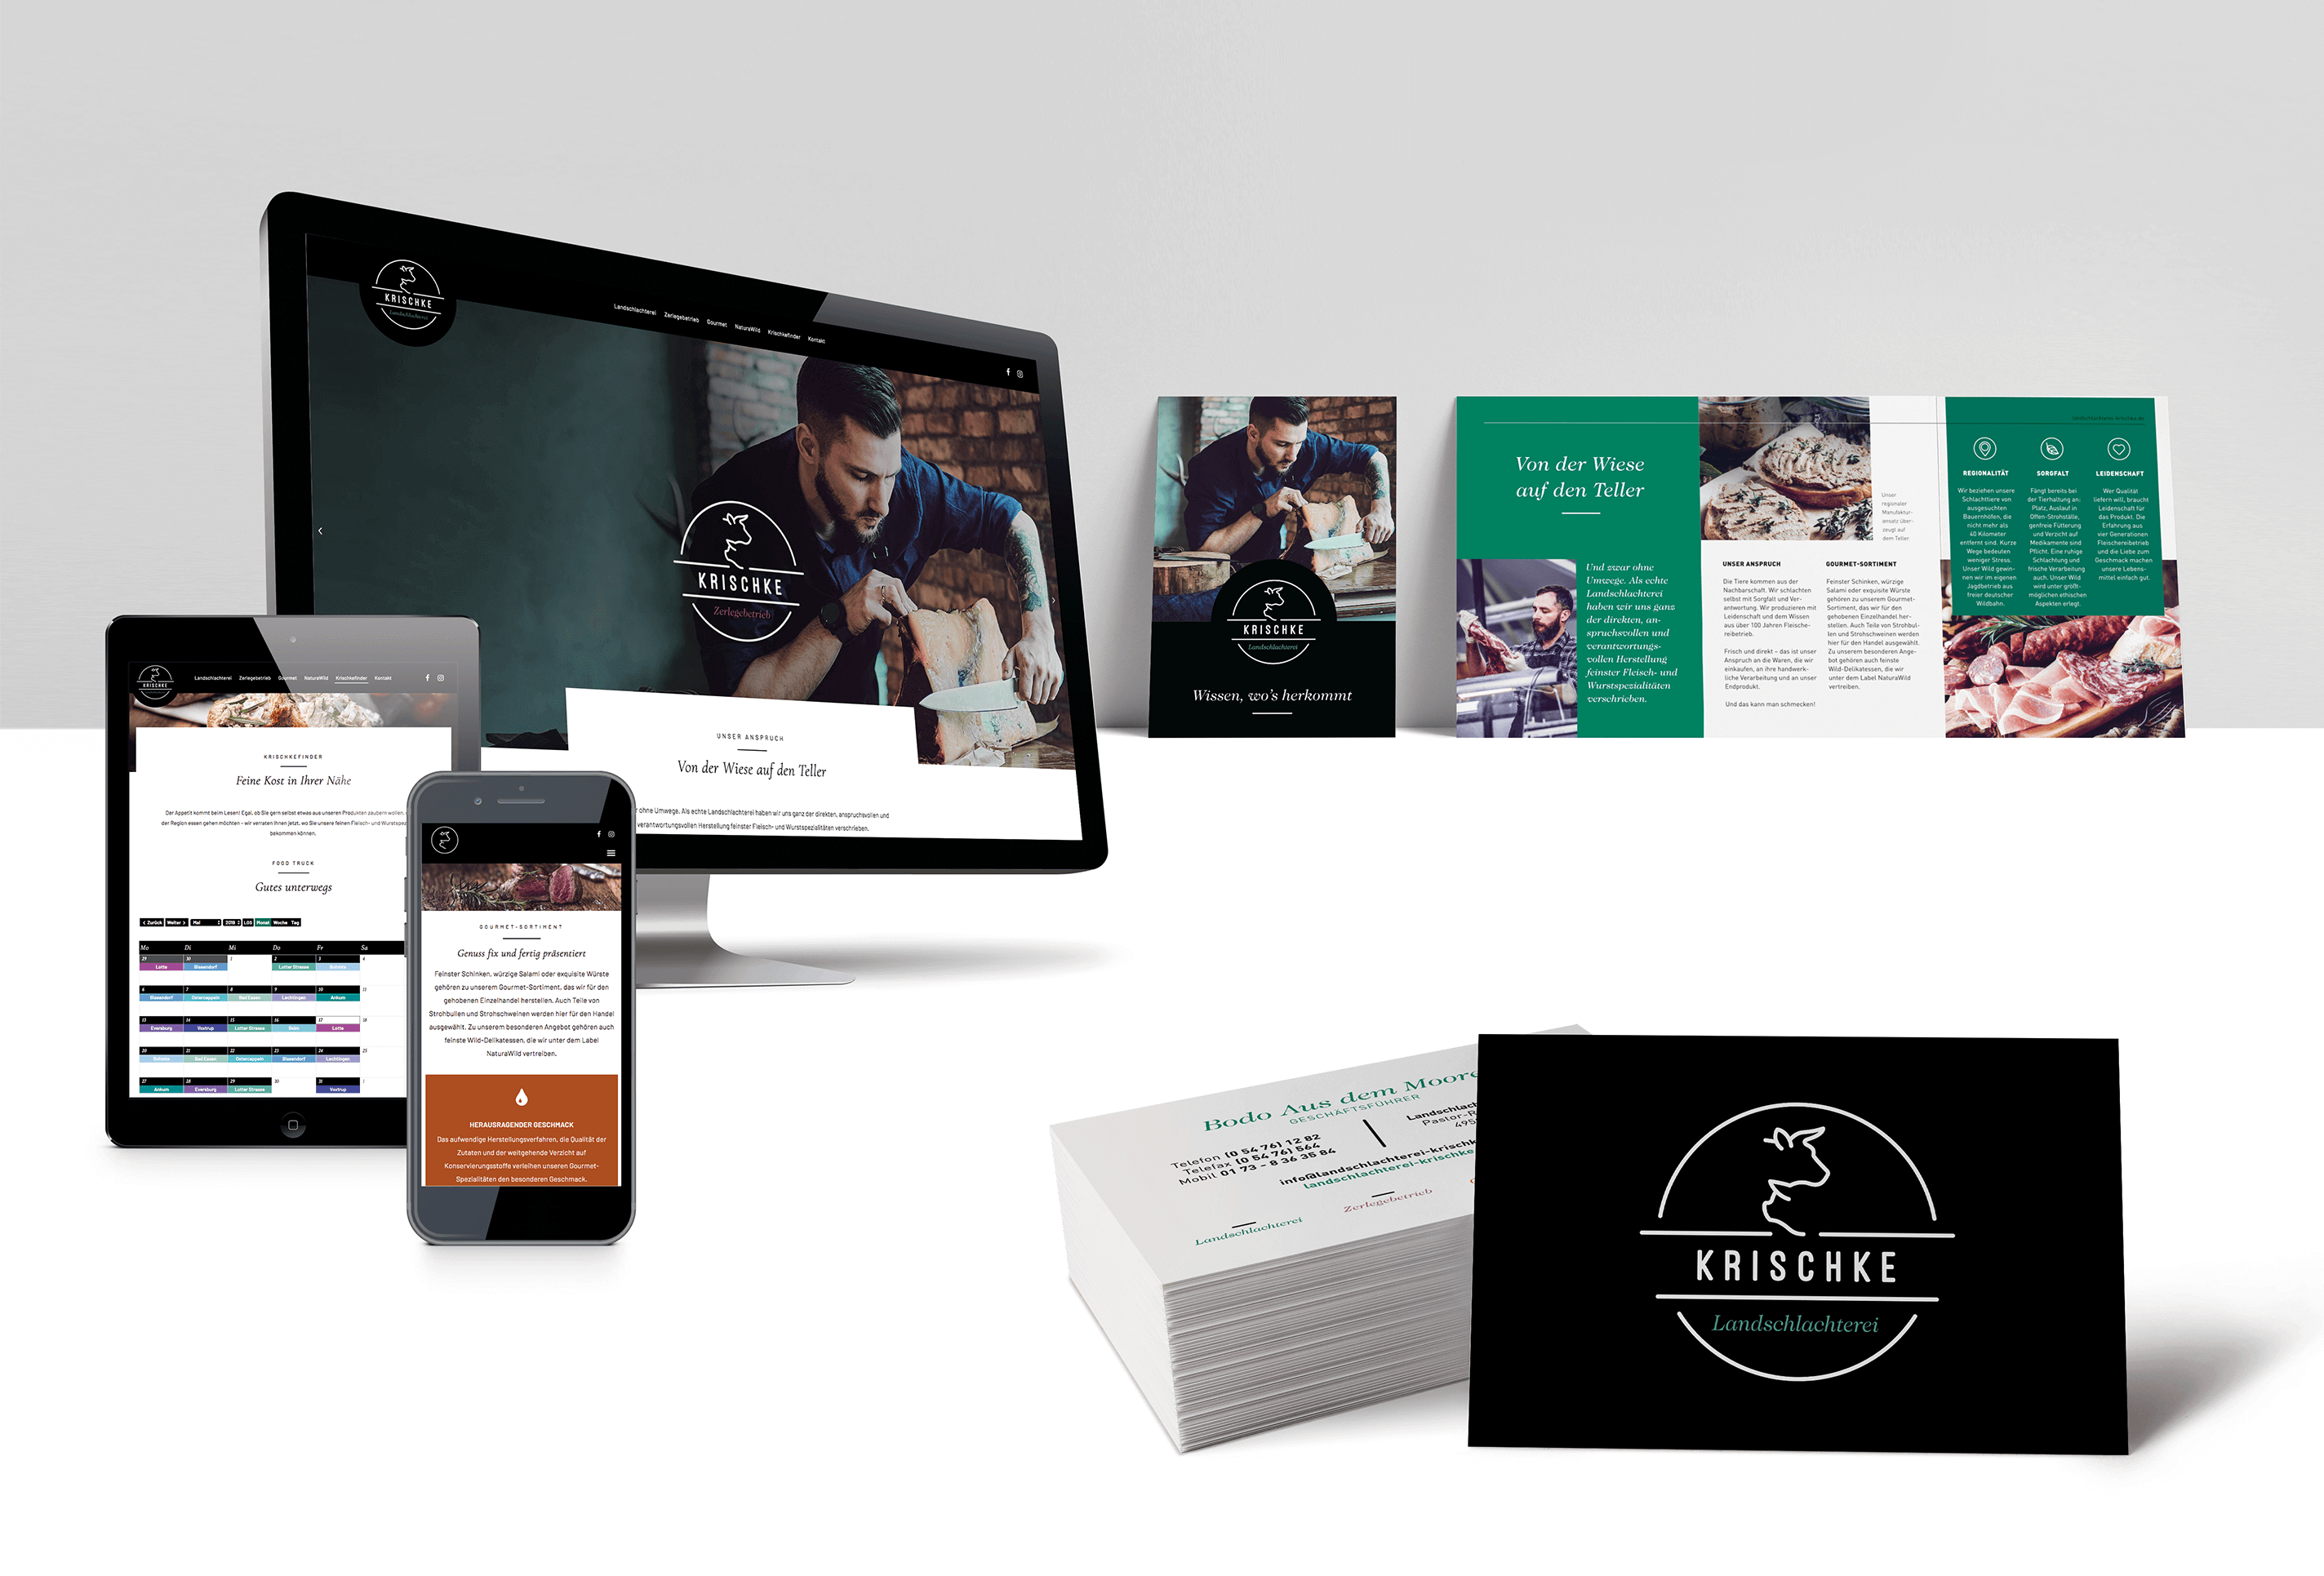 Referenz Krischke Corporate Design Mockup